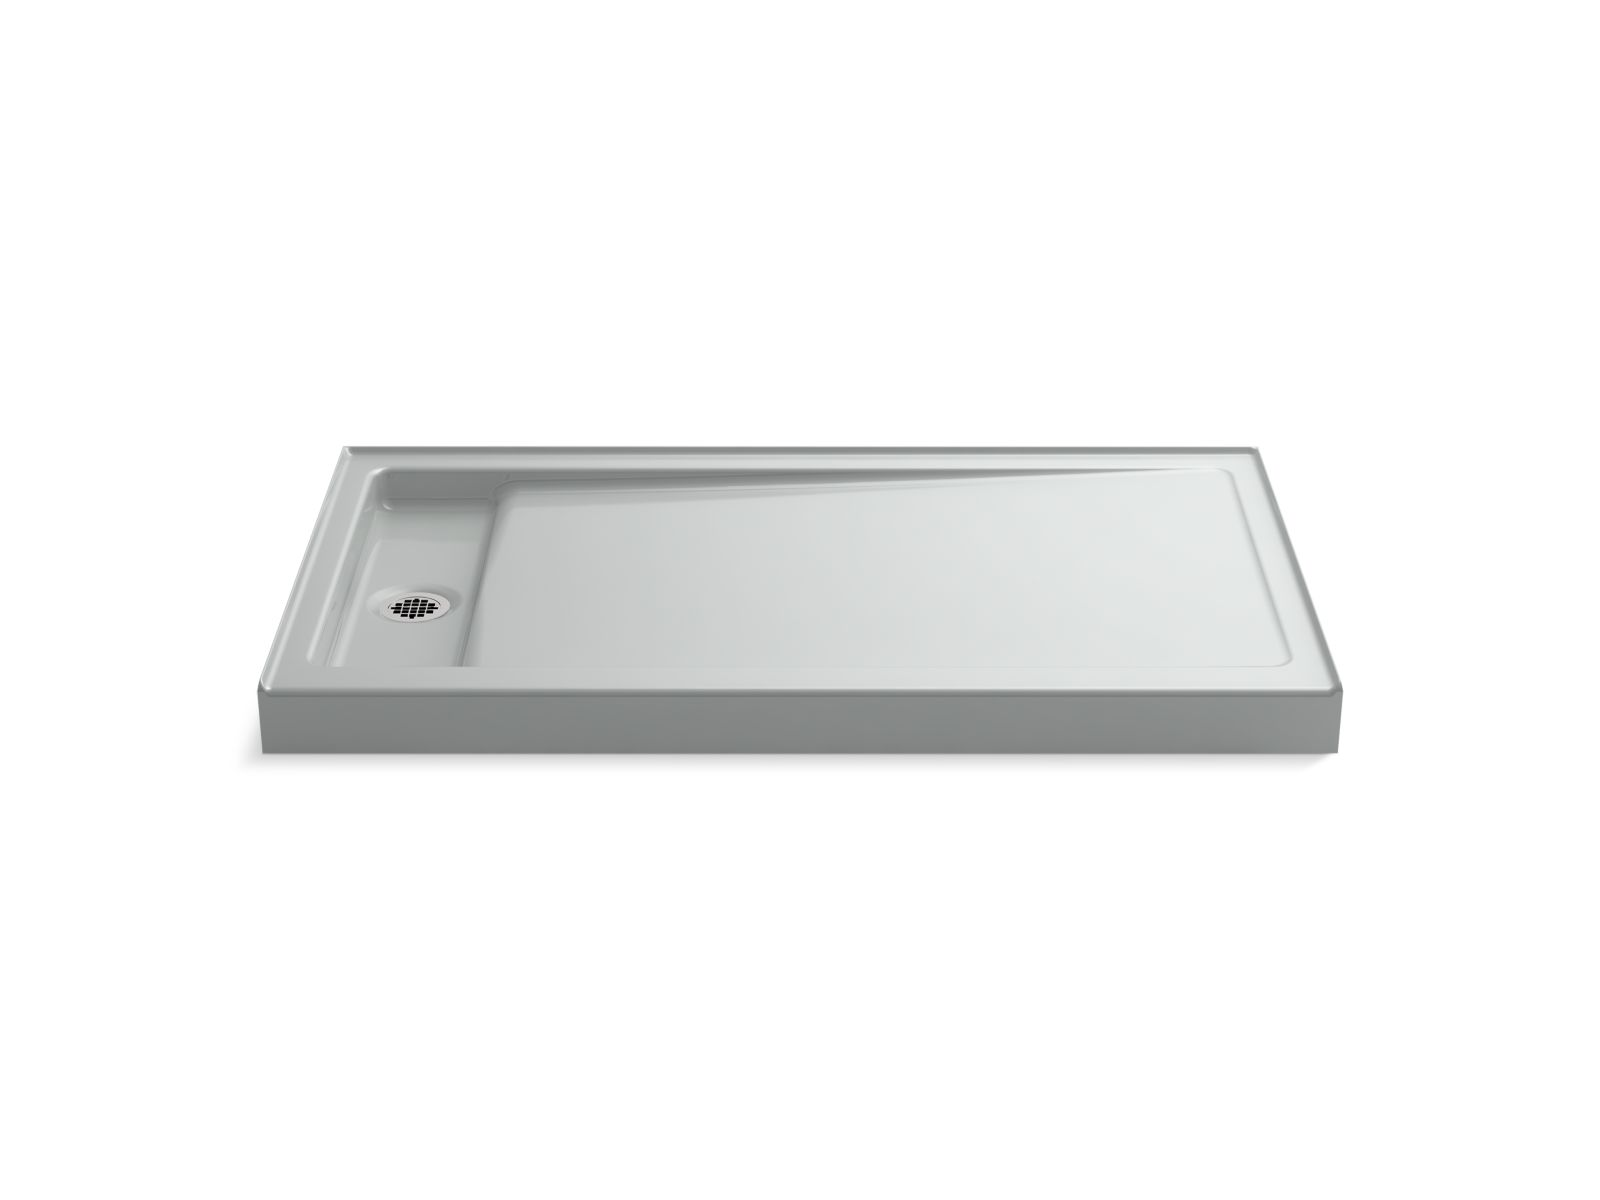 "Kohler Bellwether® K-9177-95 60"" x 34"" single-threshold shower base with left center drain Ice Grey"